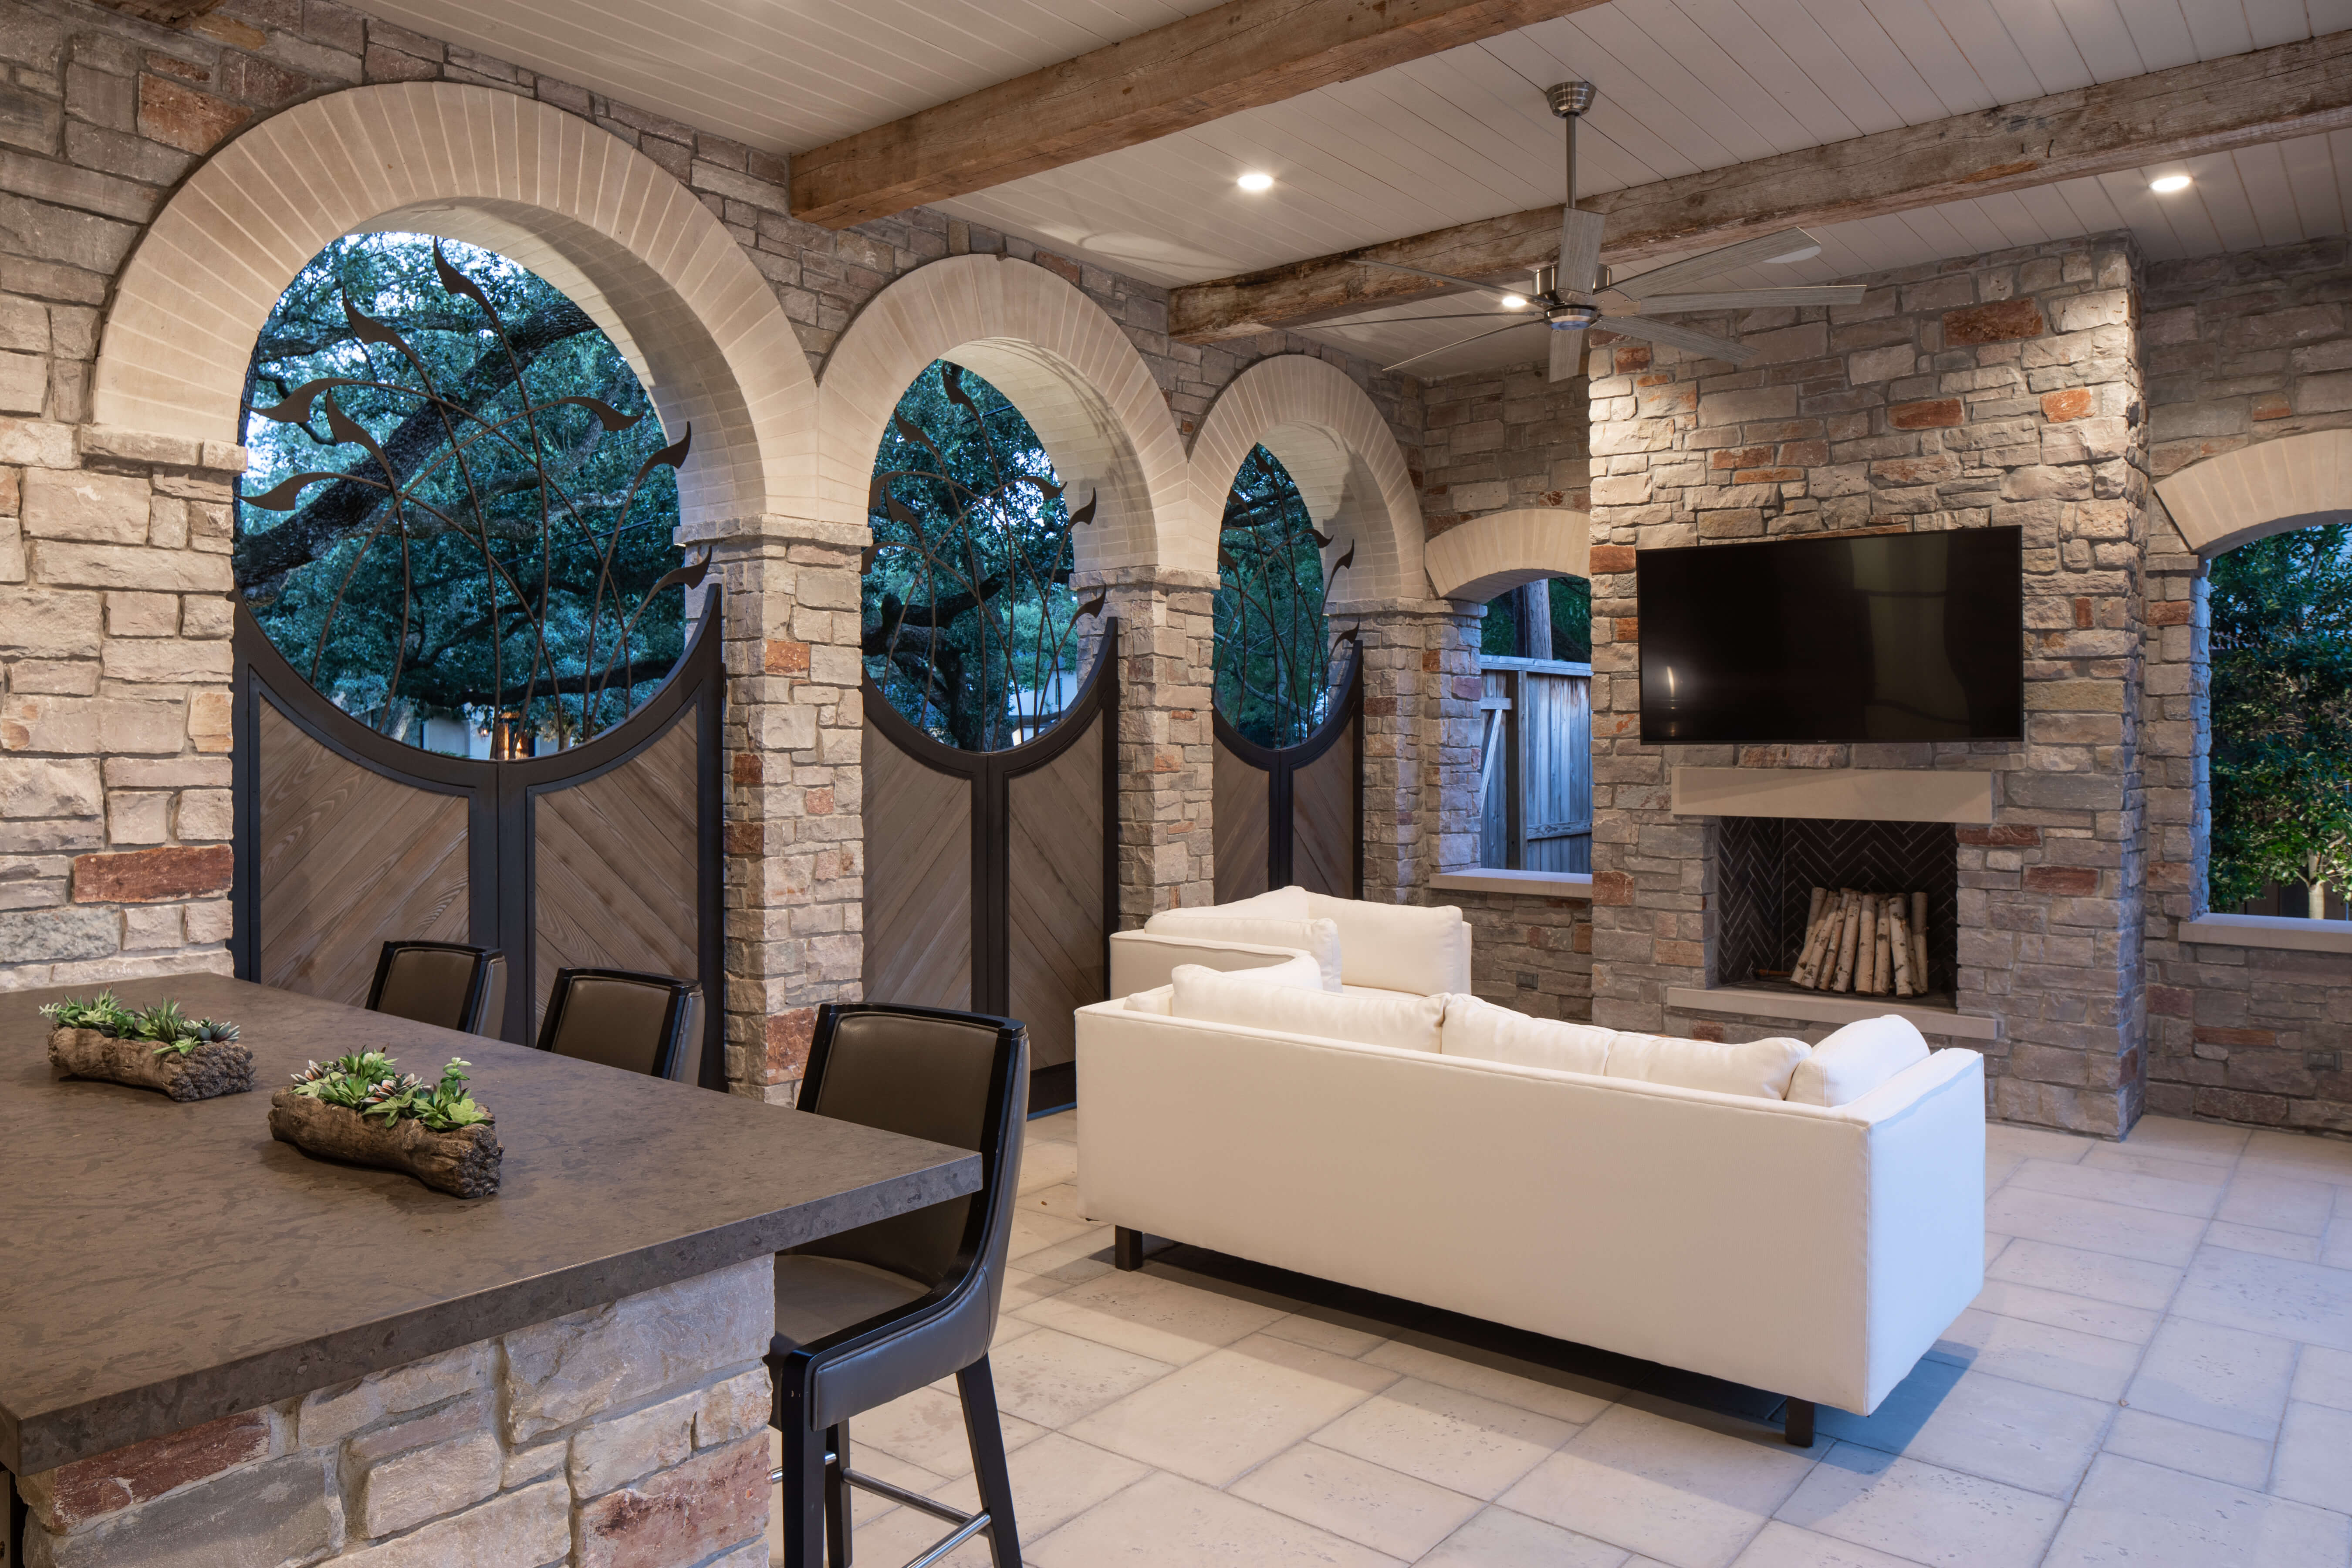 most_common_questions_custom_home